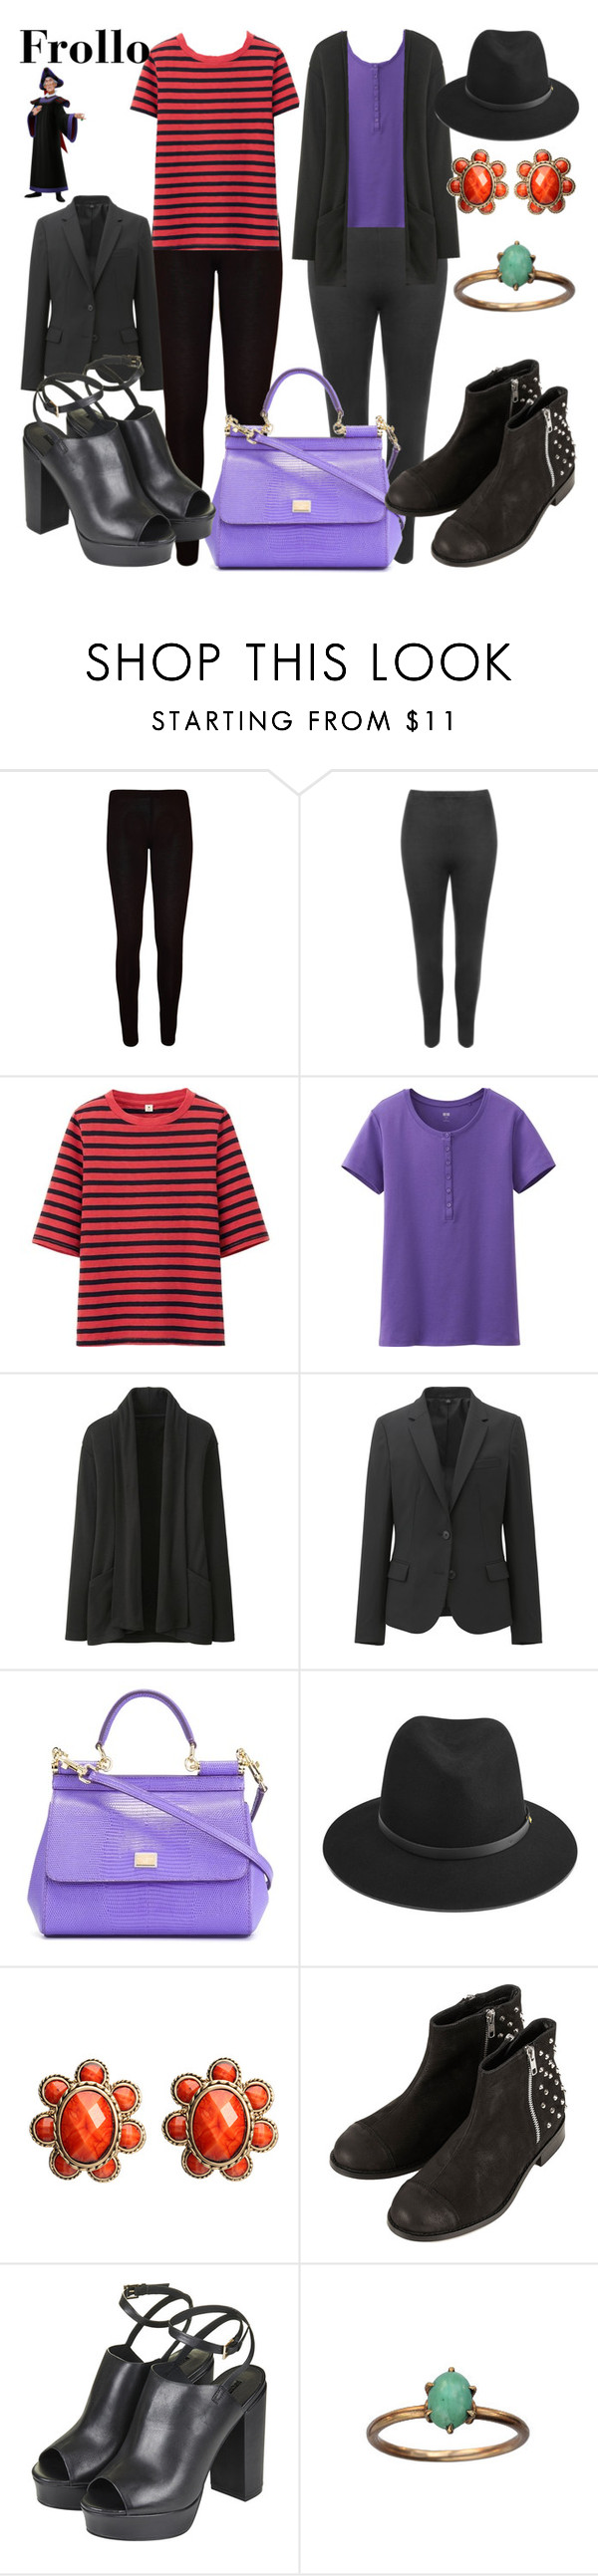 """Frollo"" by wonderlandofgeeks ❤ liked on Polyvore featuring WearAll, Uniqlo, Dolce&Gabbana, rag & bone, Amrita Singh, Topshop, disney, Frollo and thehunchbackofnotredame"